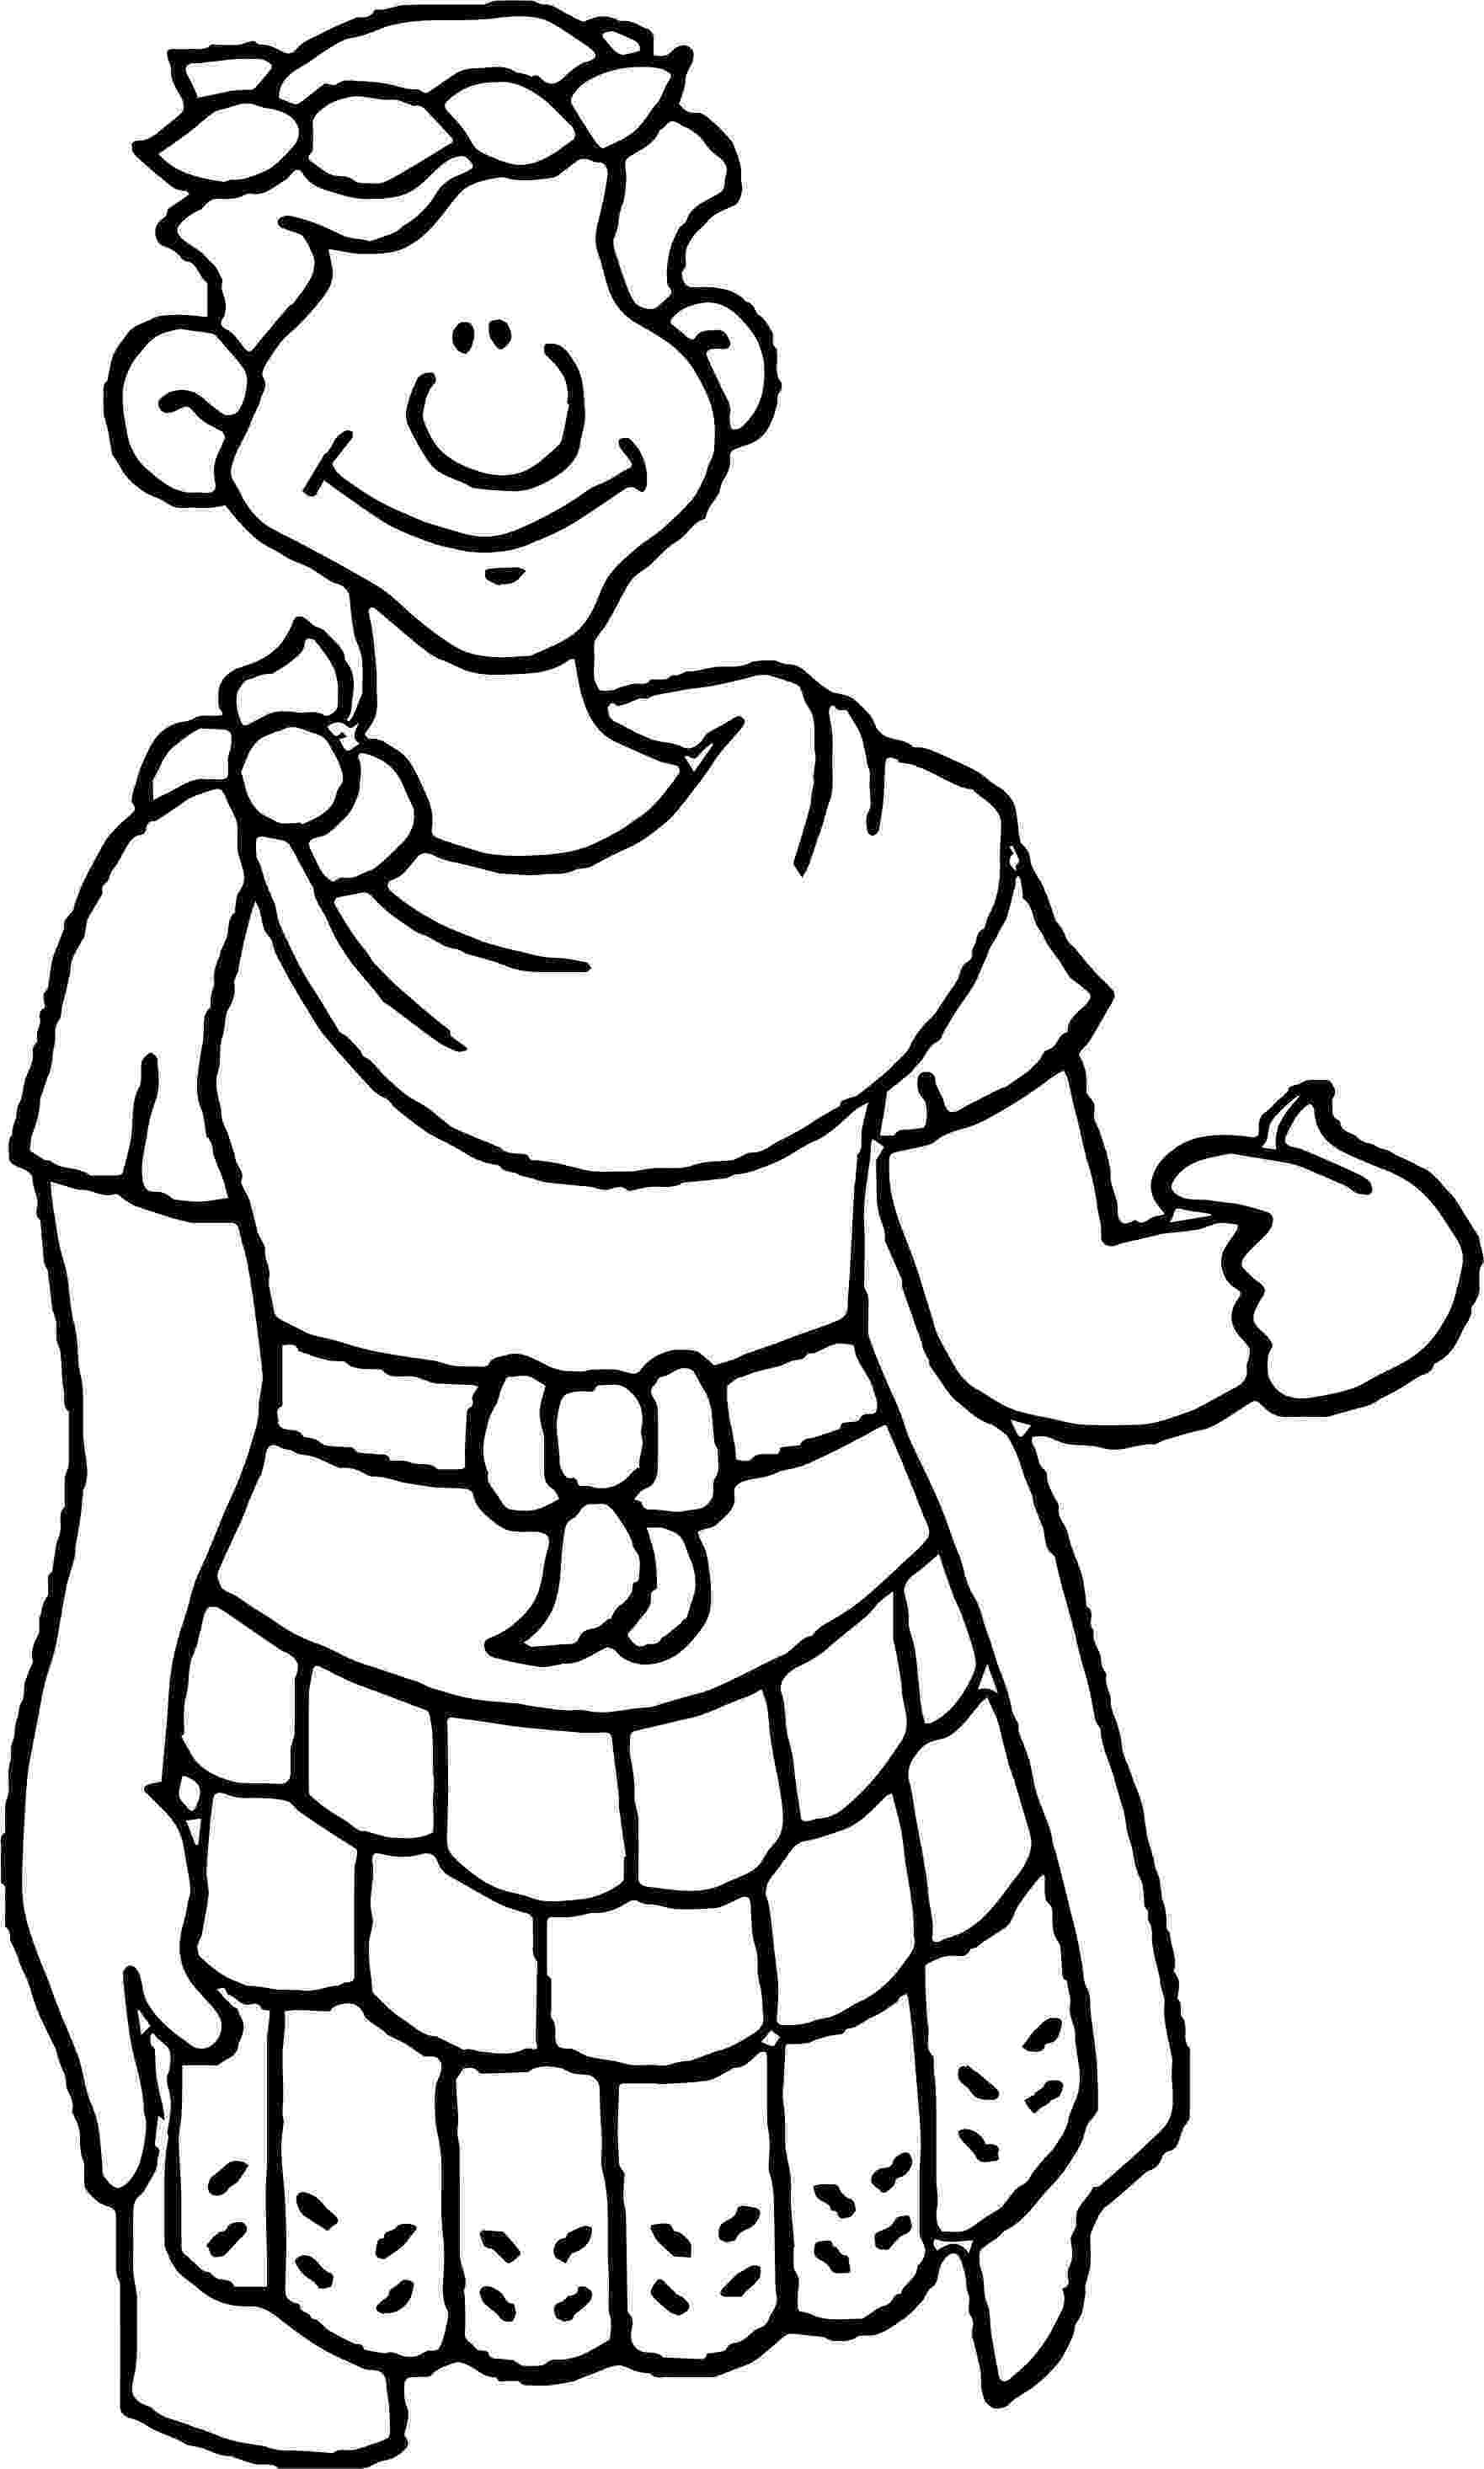 ancient rome coloring pages ancient rome king me coloring page wecoloringpagecom rome ancient pages coloring